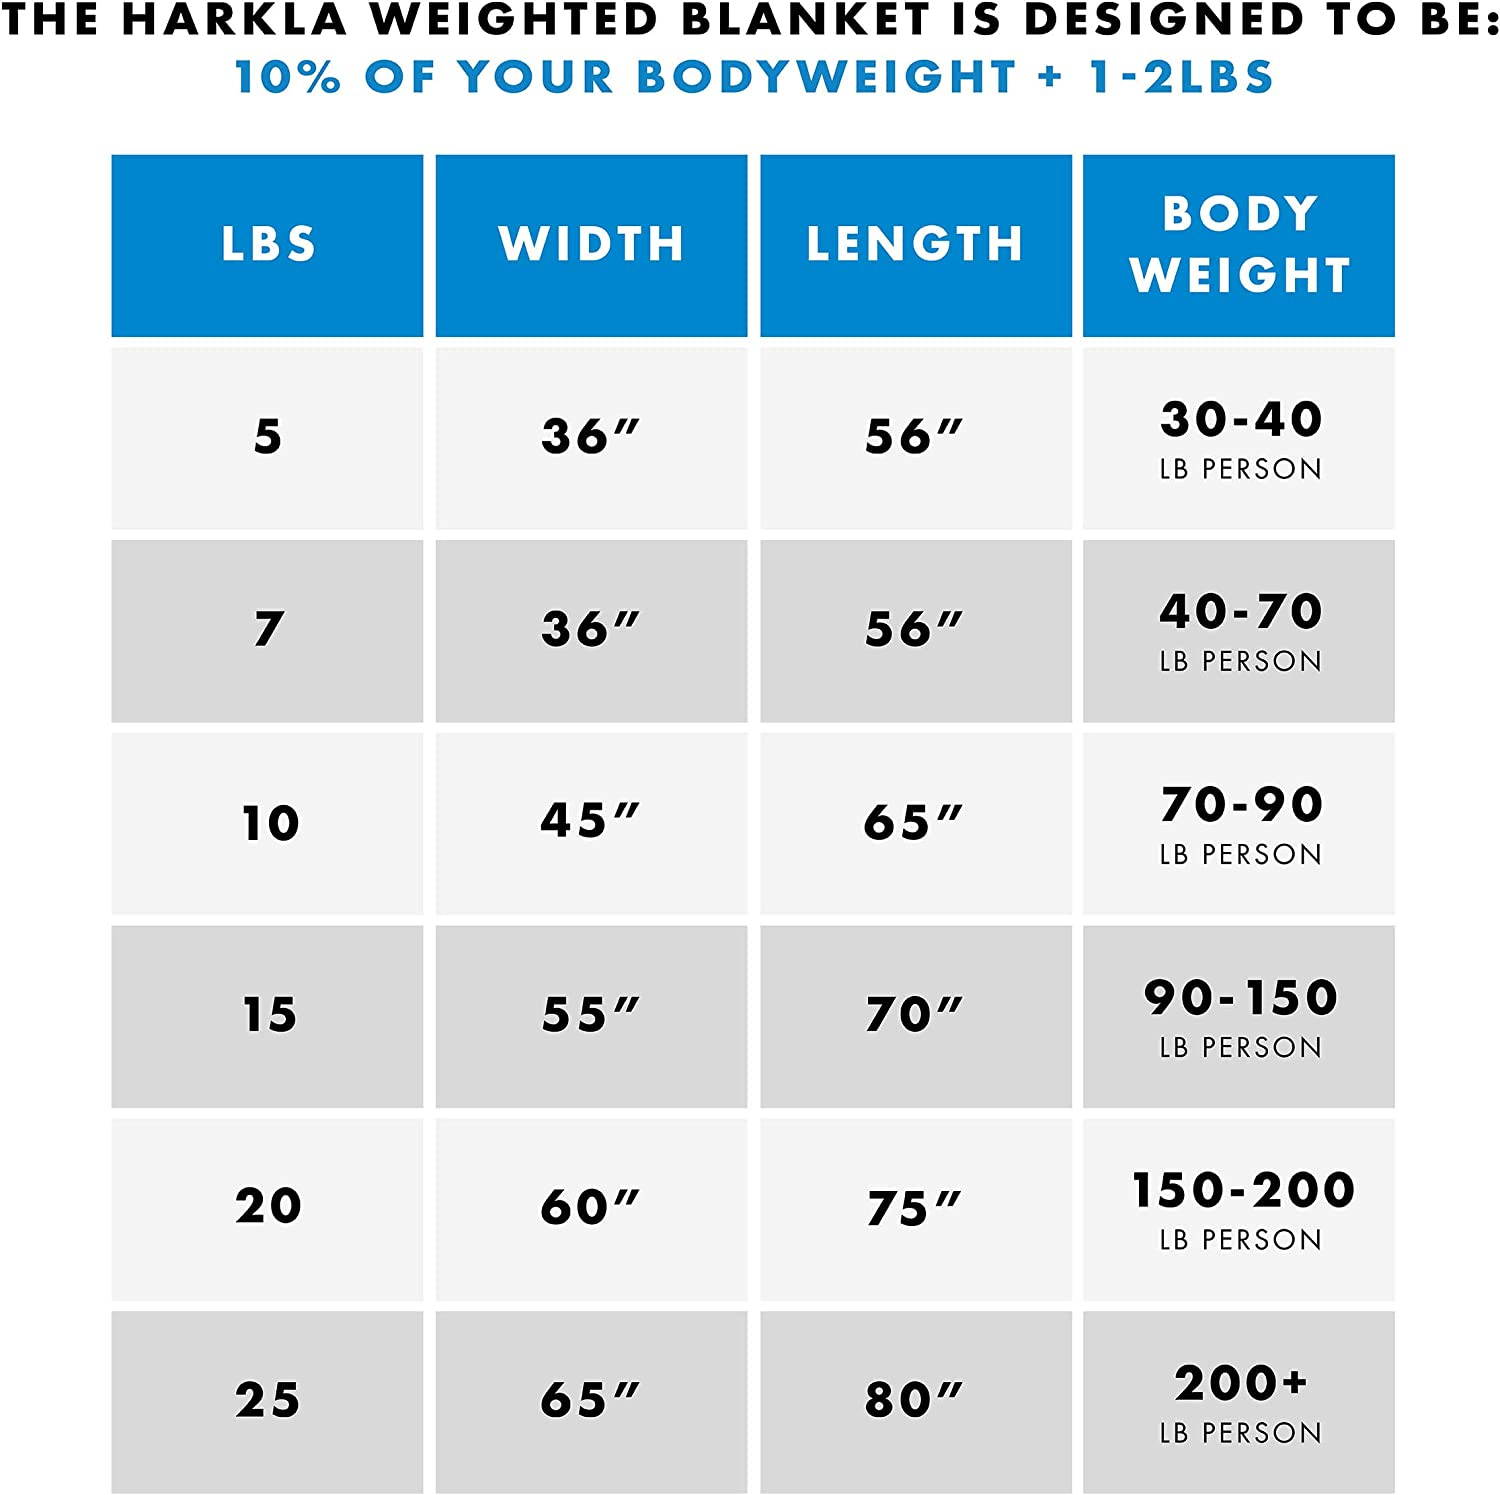 10lbs Soft and Comfortable Minky Fabric Harkla Kids Weighted Blanket Duvet Cover /& Weight - Cooling Bamboo Weighted Blanket for Children Weighing 70lb to 90lb